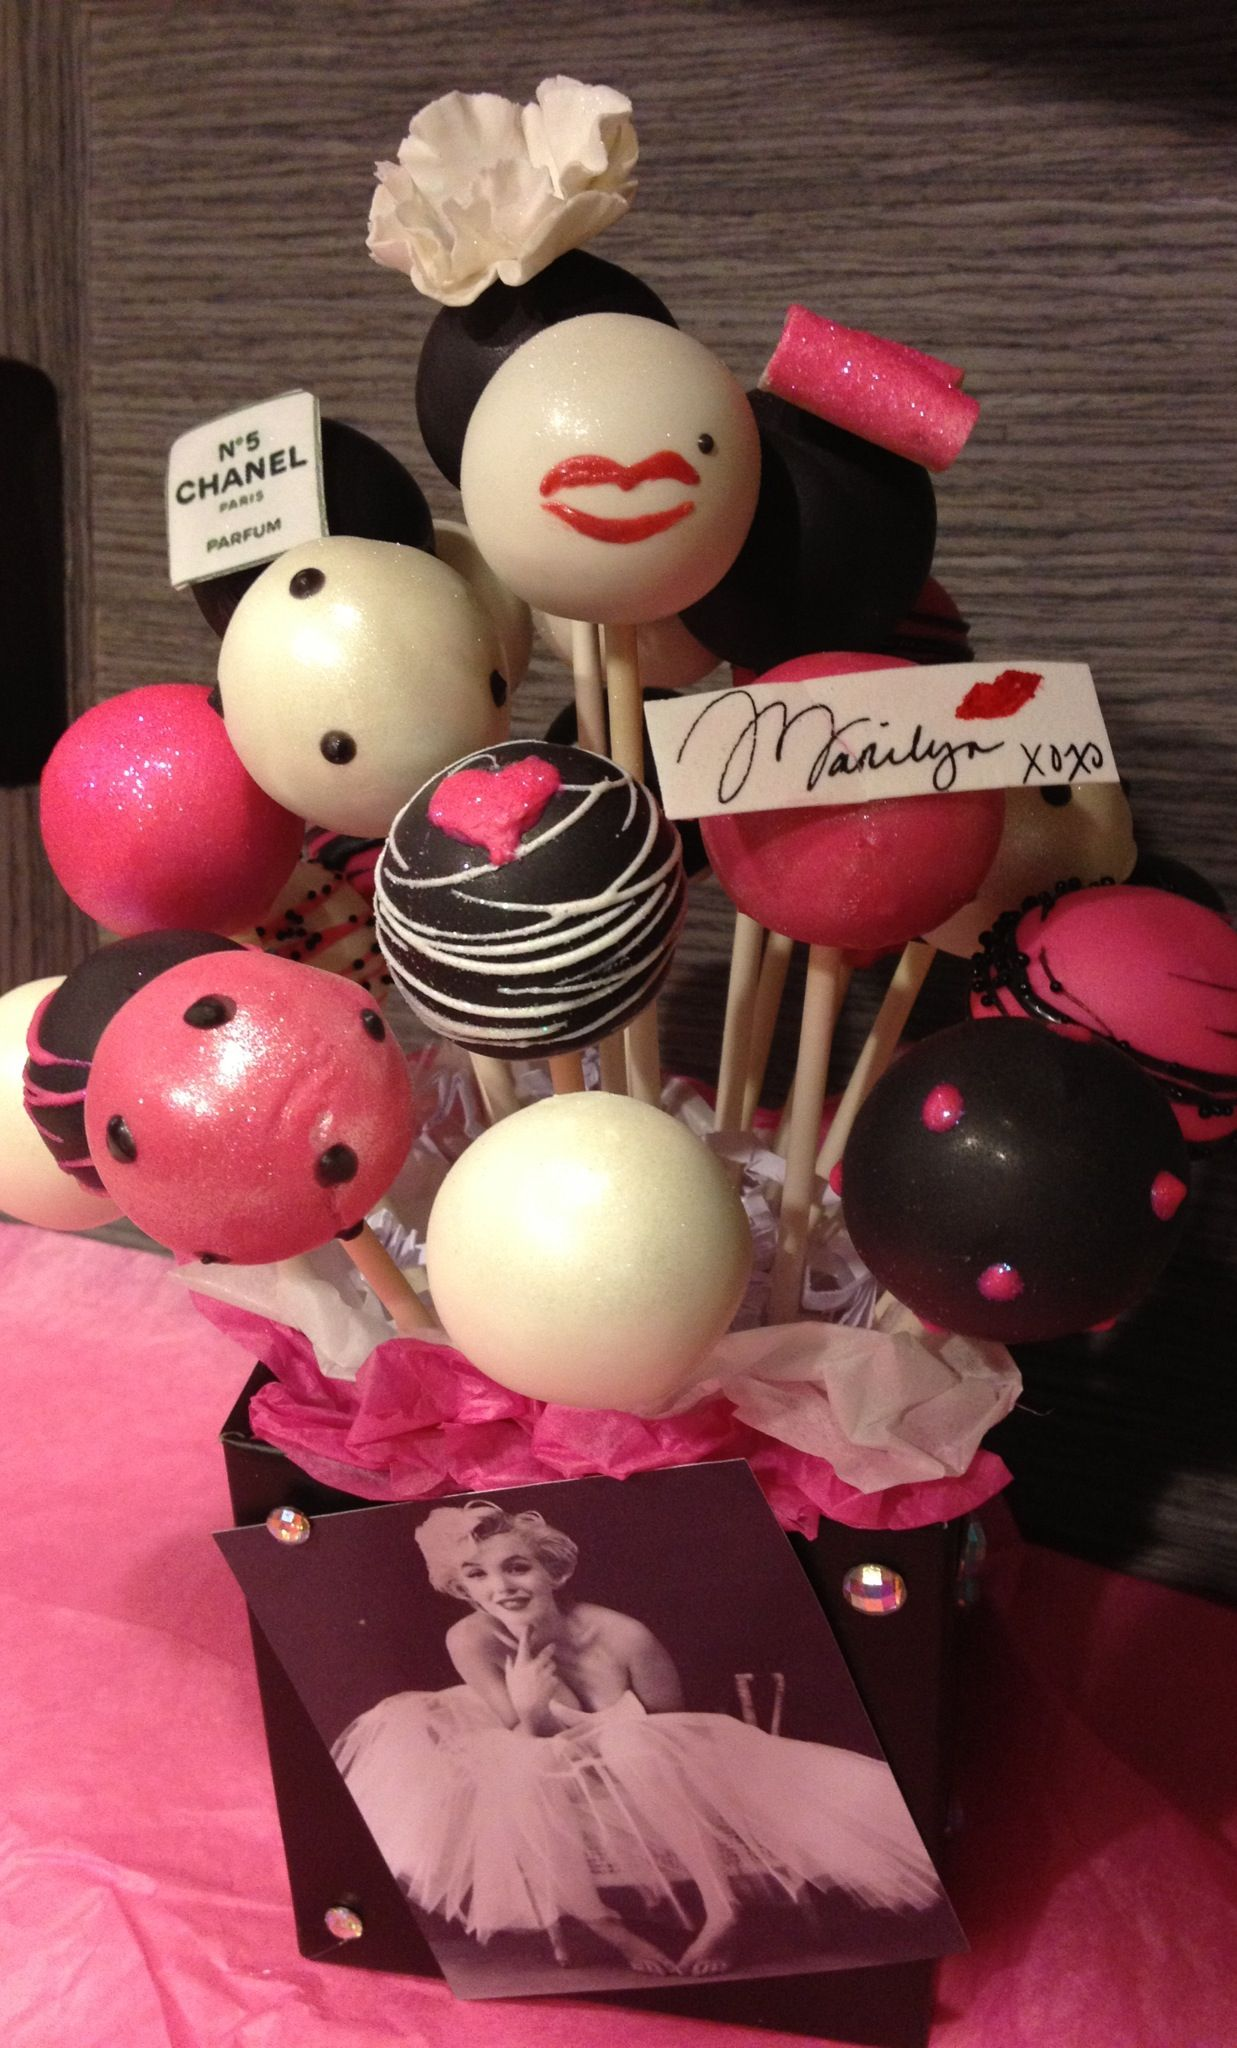 Marilyn Monroe Cake Pops By Haute Pop Couture Marilyn Monroe Birthday Cake Pops Cake